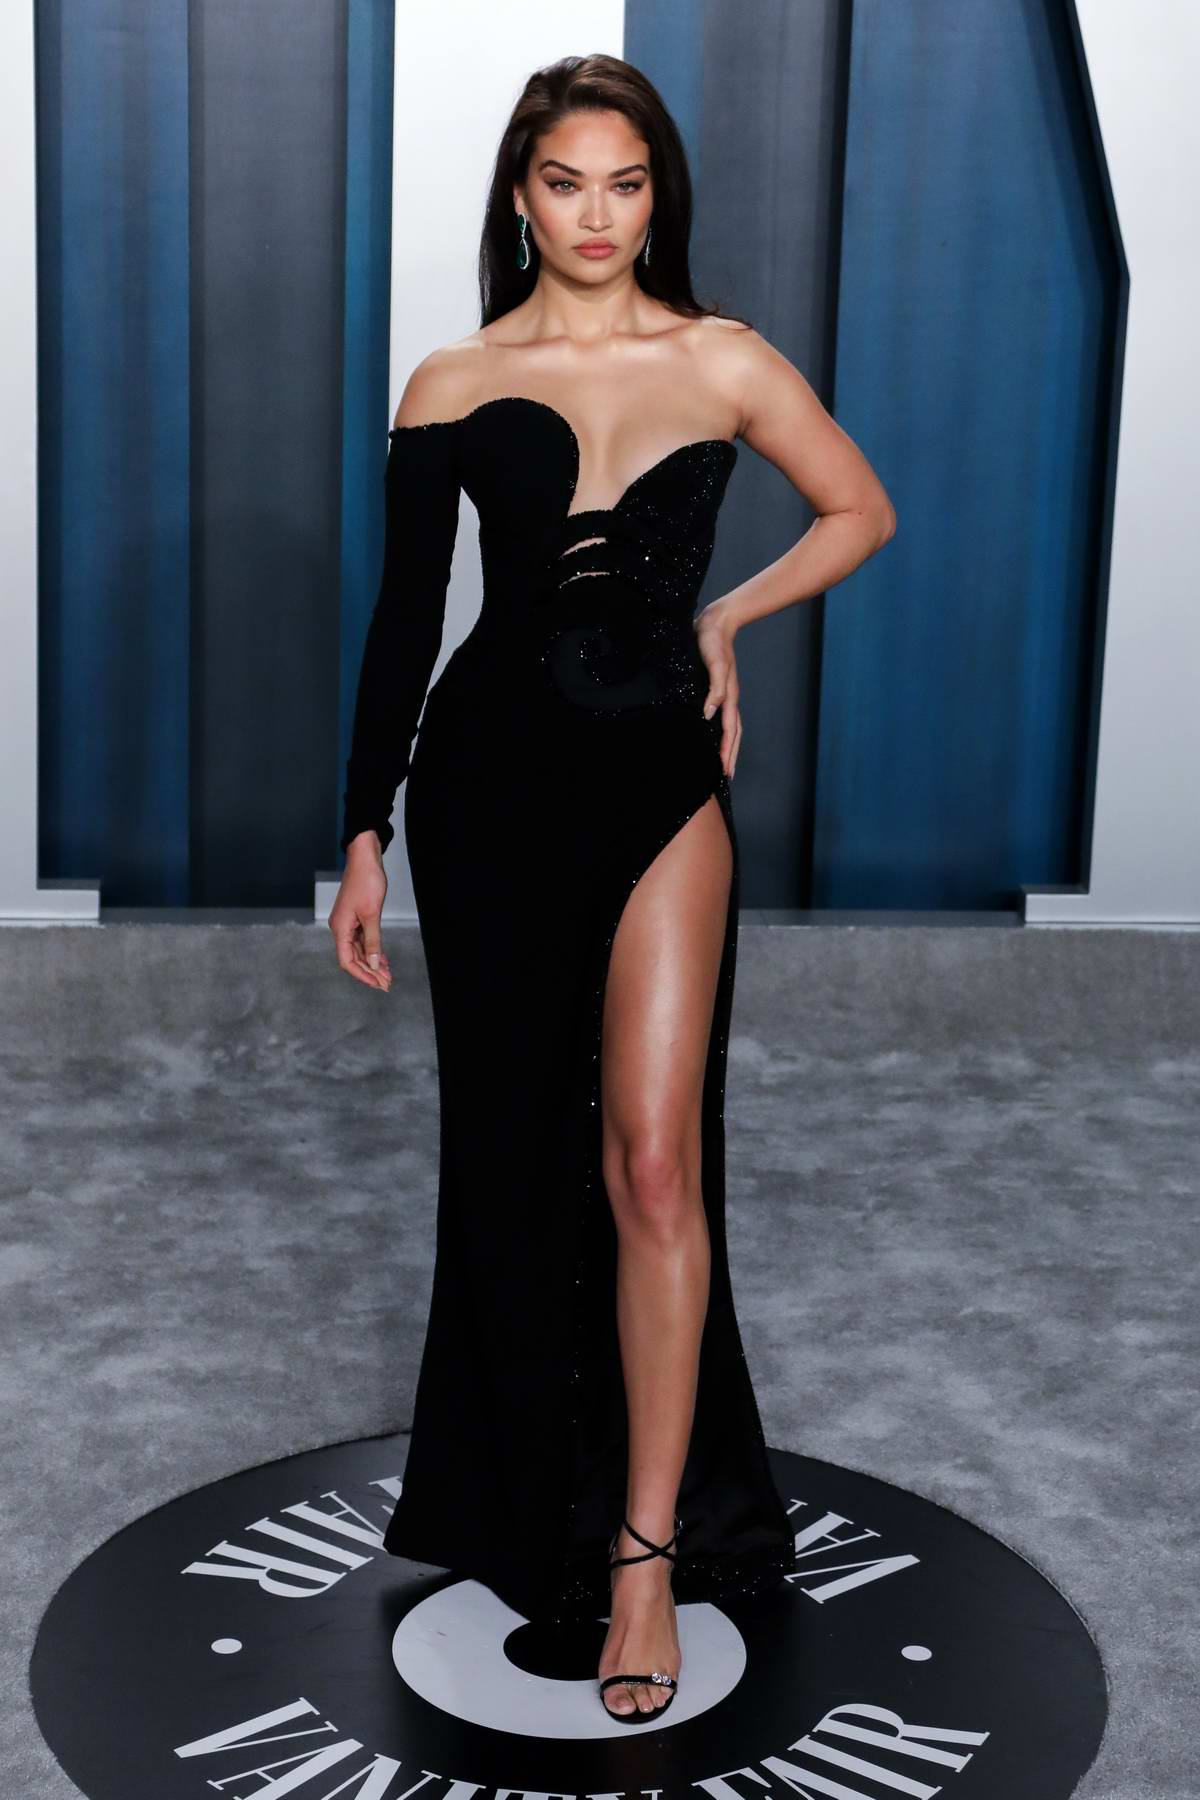 Shanina Shaik attends the 2020 Vanity Fair Oscar Party at Wallis Annenberg Center for the Performing Arts in Los Angeles